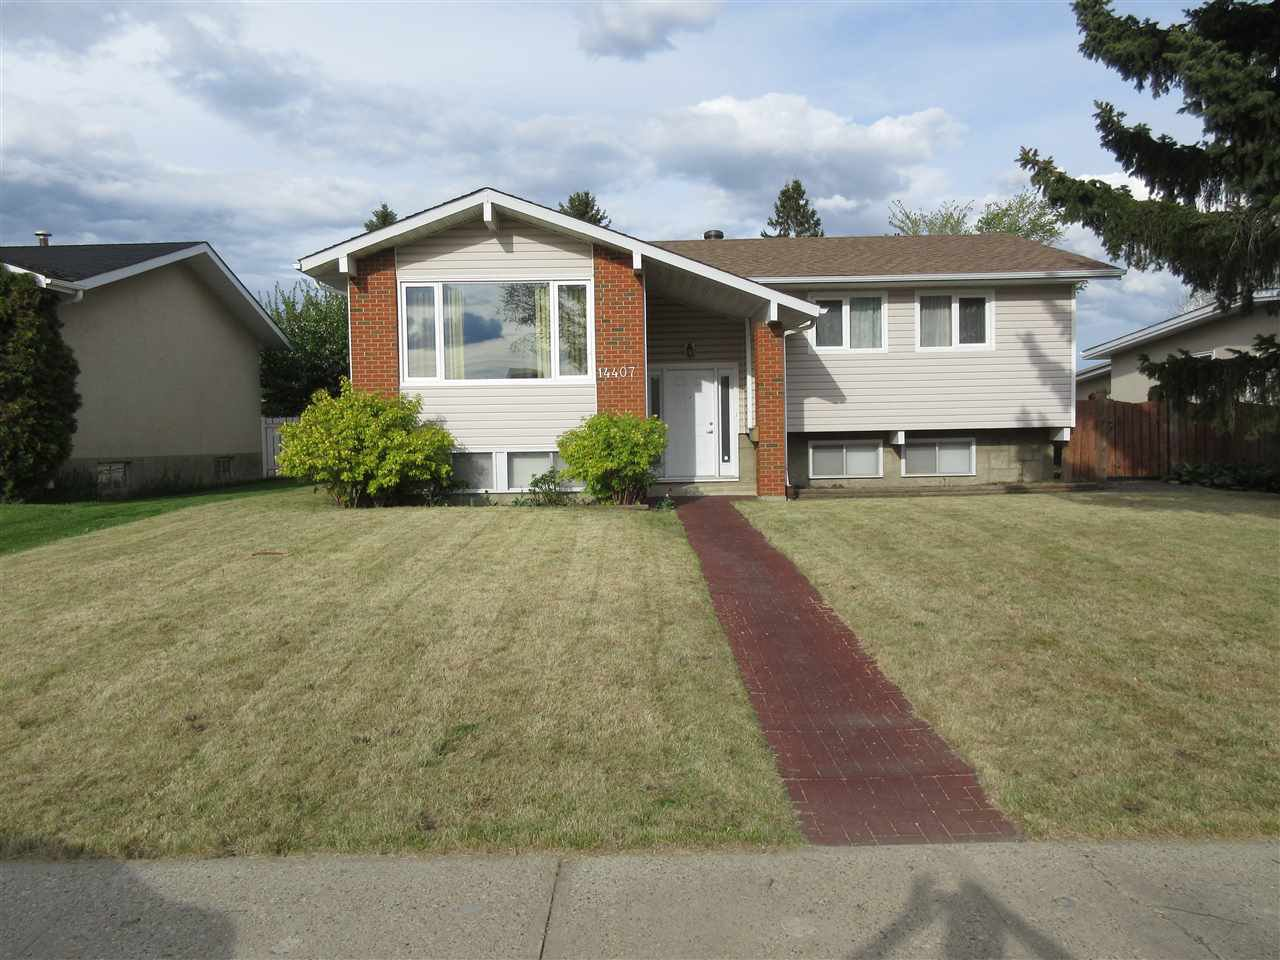 Main Photo: 14407 87 Street in Edmonton: Zone 02 House for sale : MLS®# E4198577